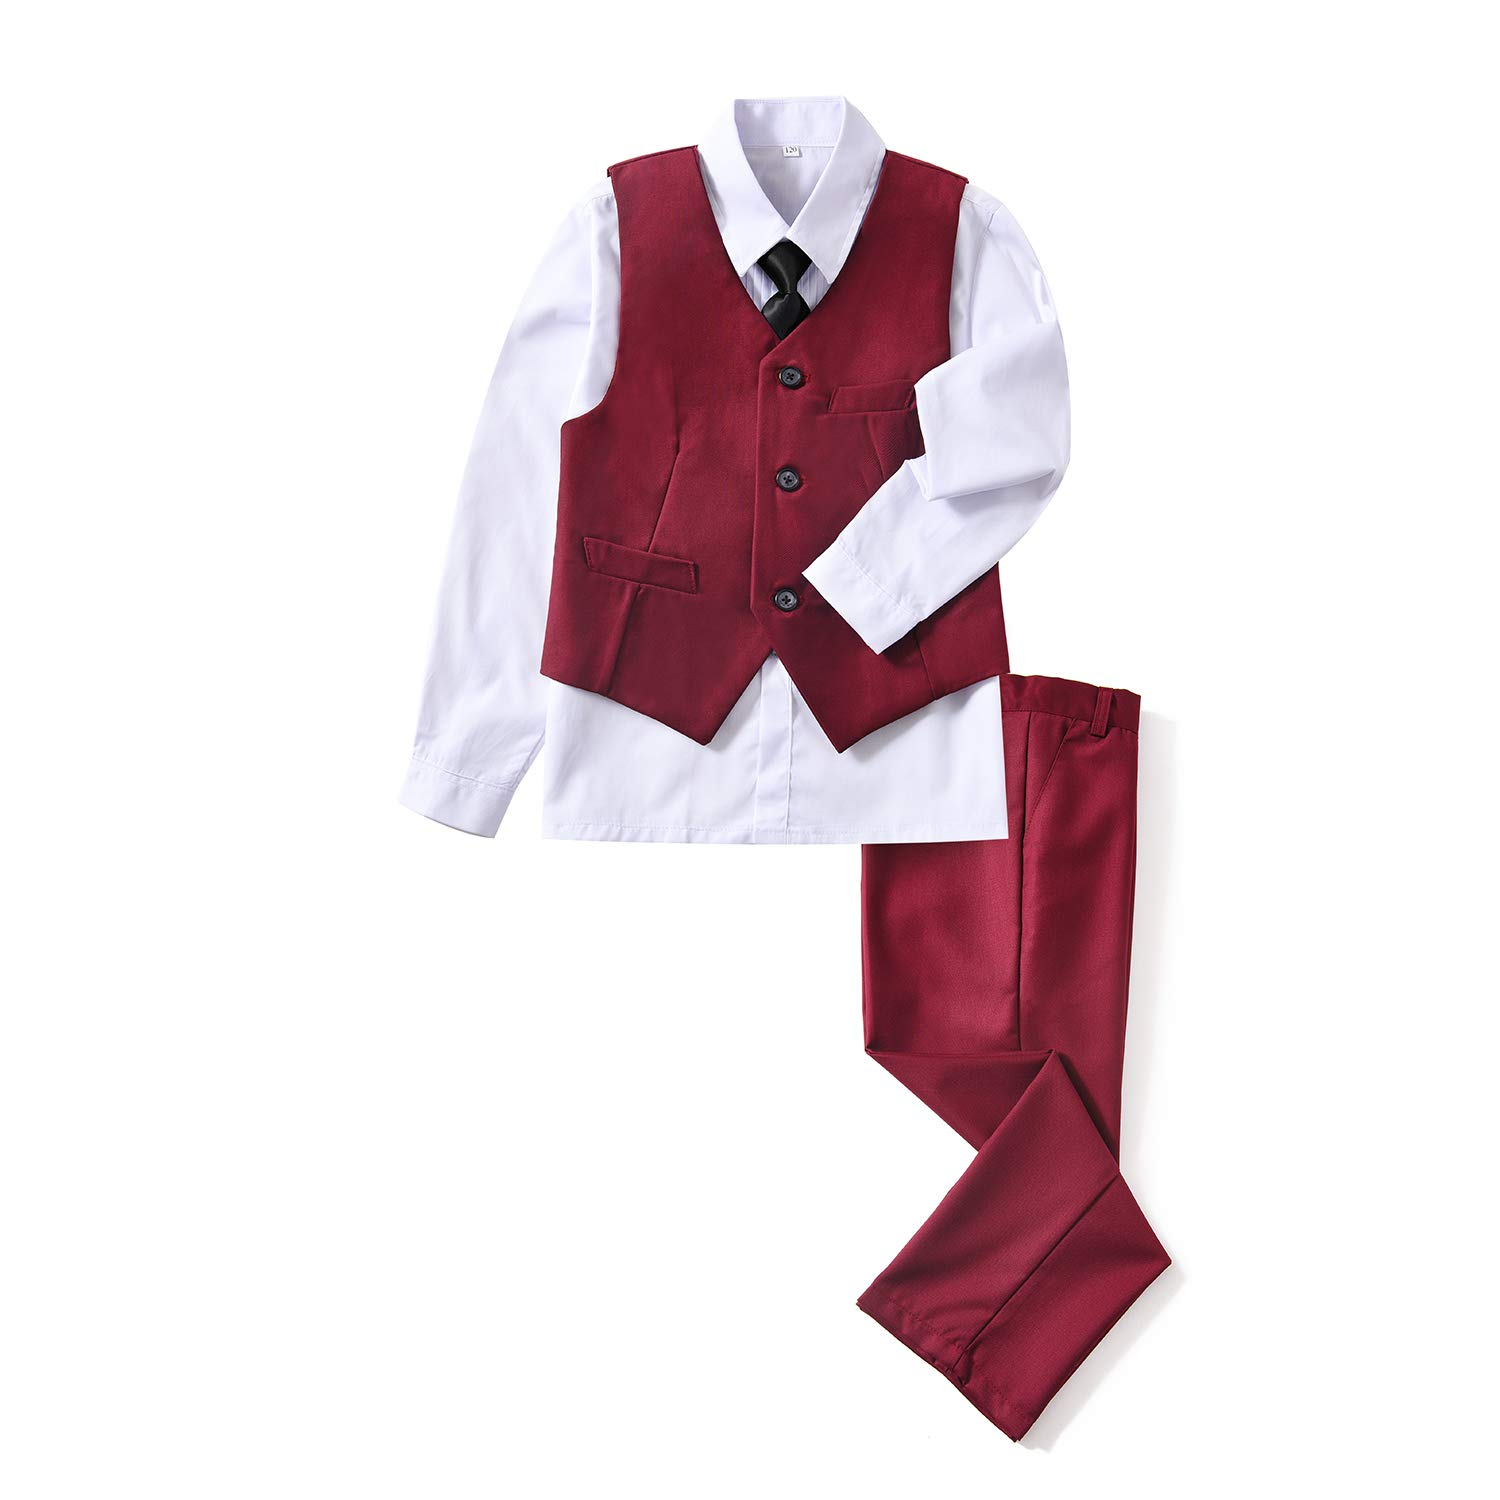 Yuanlu Boys 4 Piece Formal Suit Set with Burgundy Vest Pants White Shirt Tie for Wedding Size 8